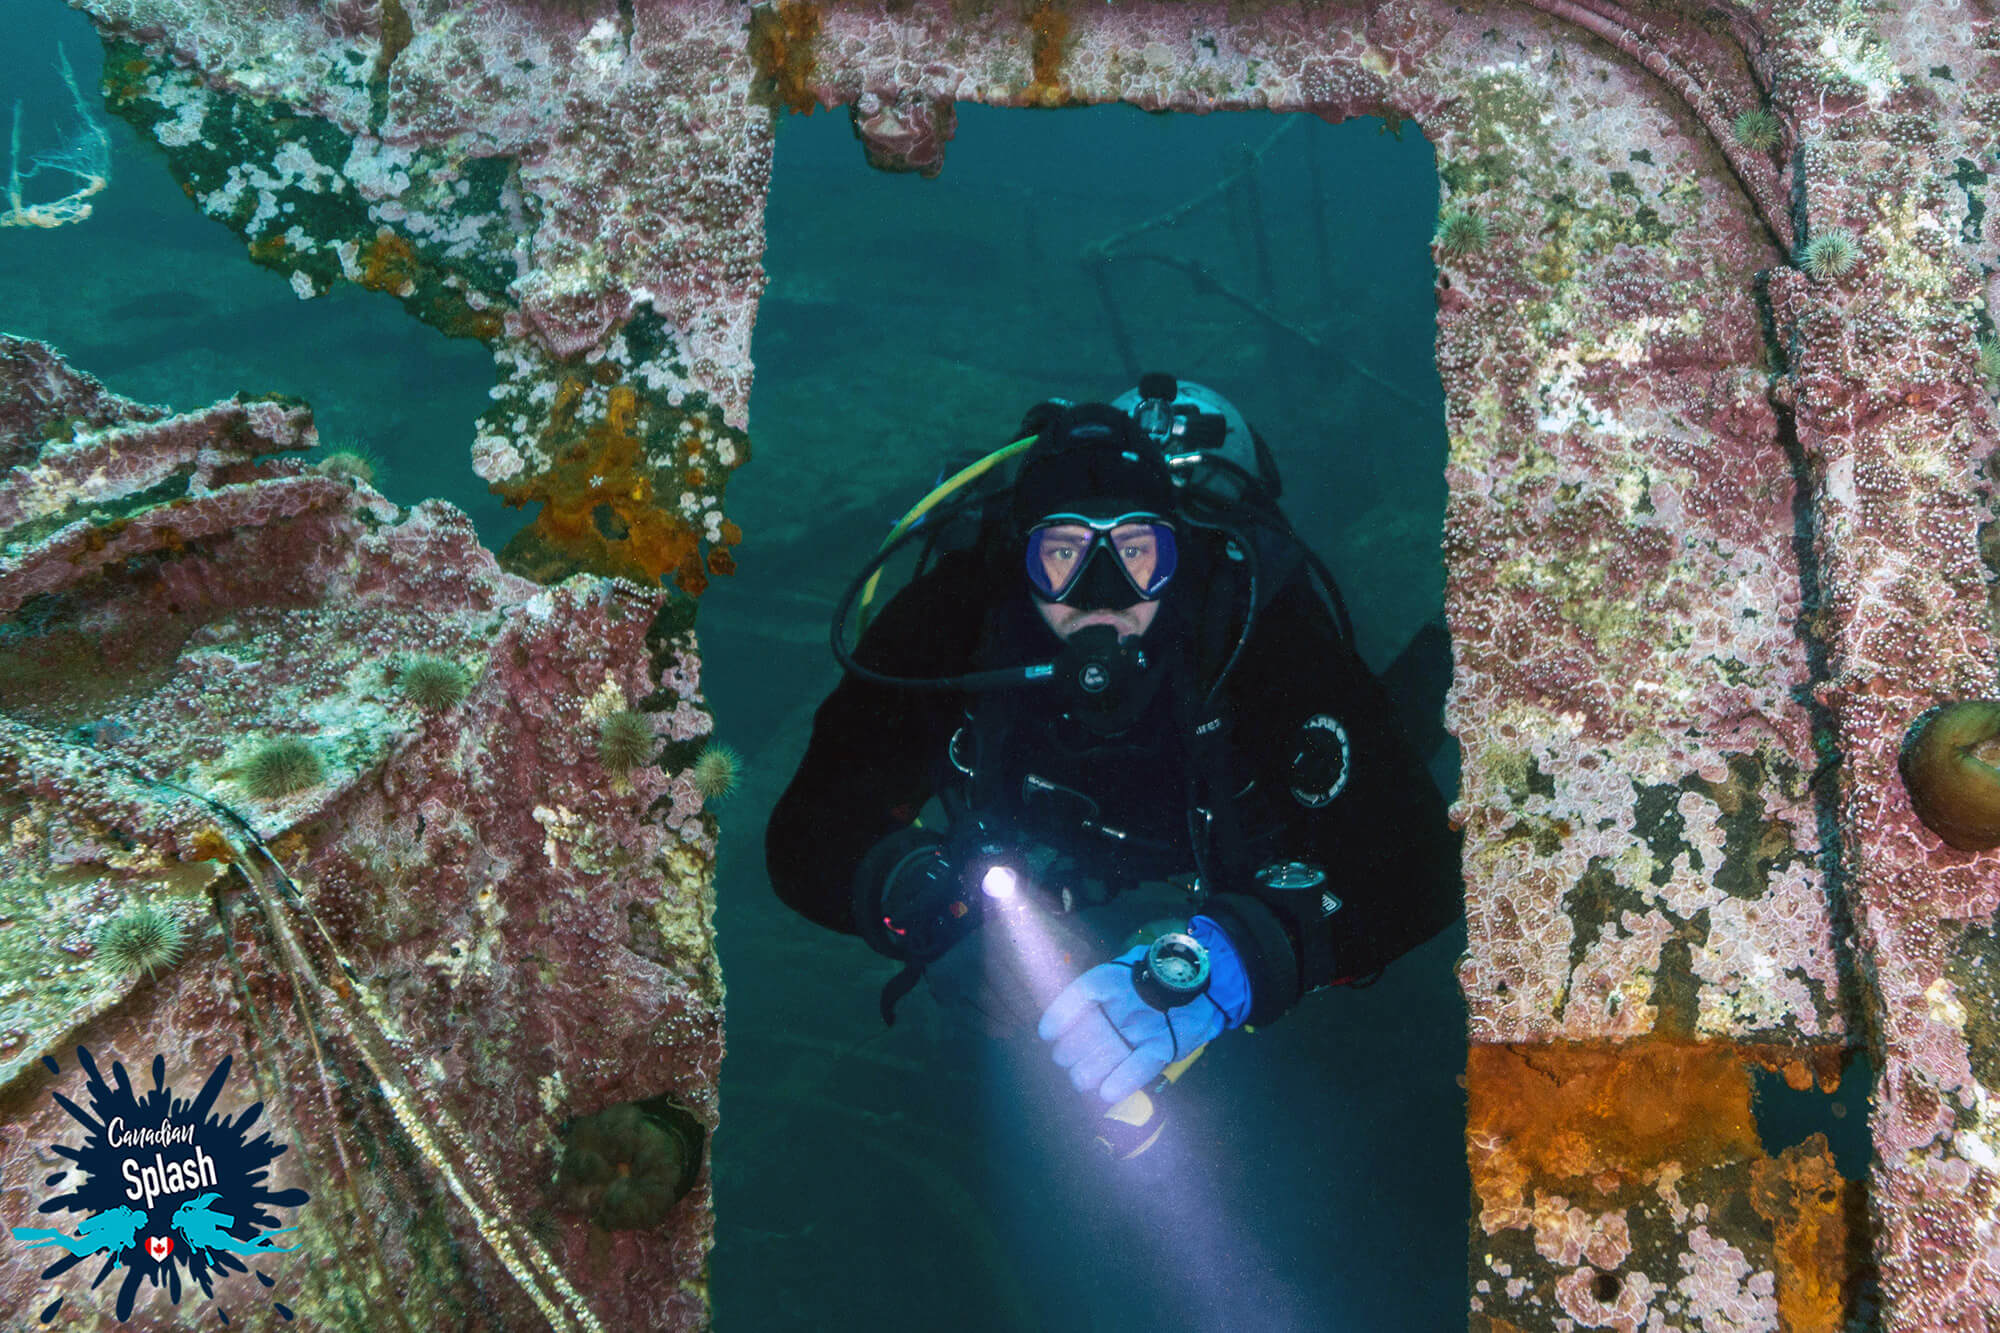 Scuba Joey Peeking Through A Door Frame While Scuba Diving The Bell Island Shipwrecks In Newfoundland, Canada